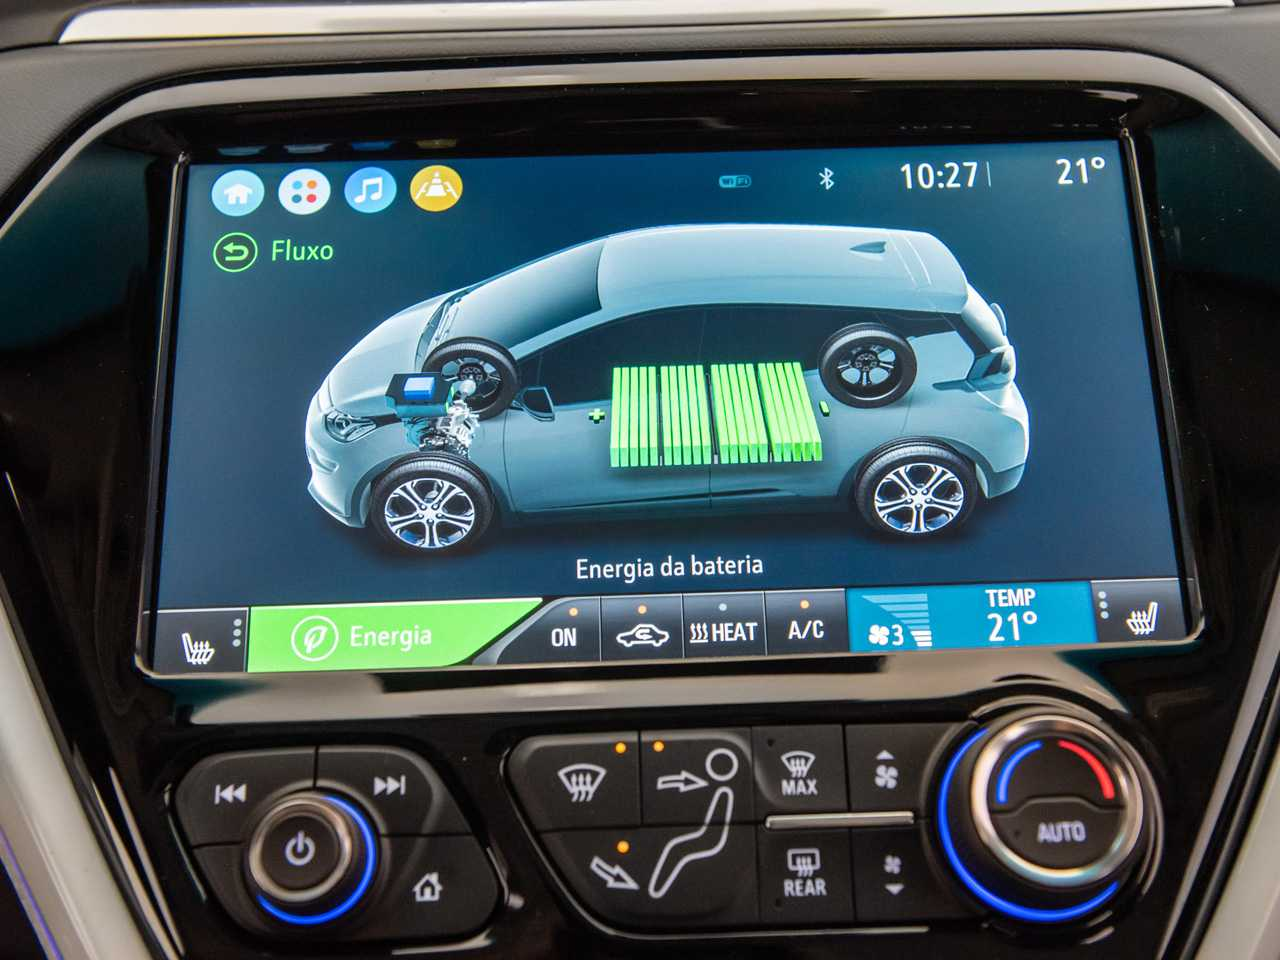 ChevroletBolt 2021 - console central